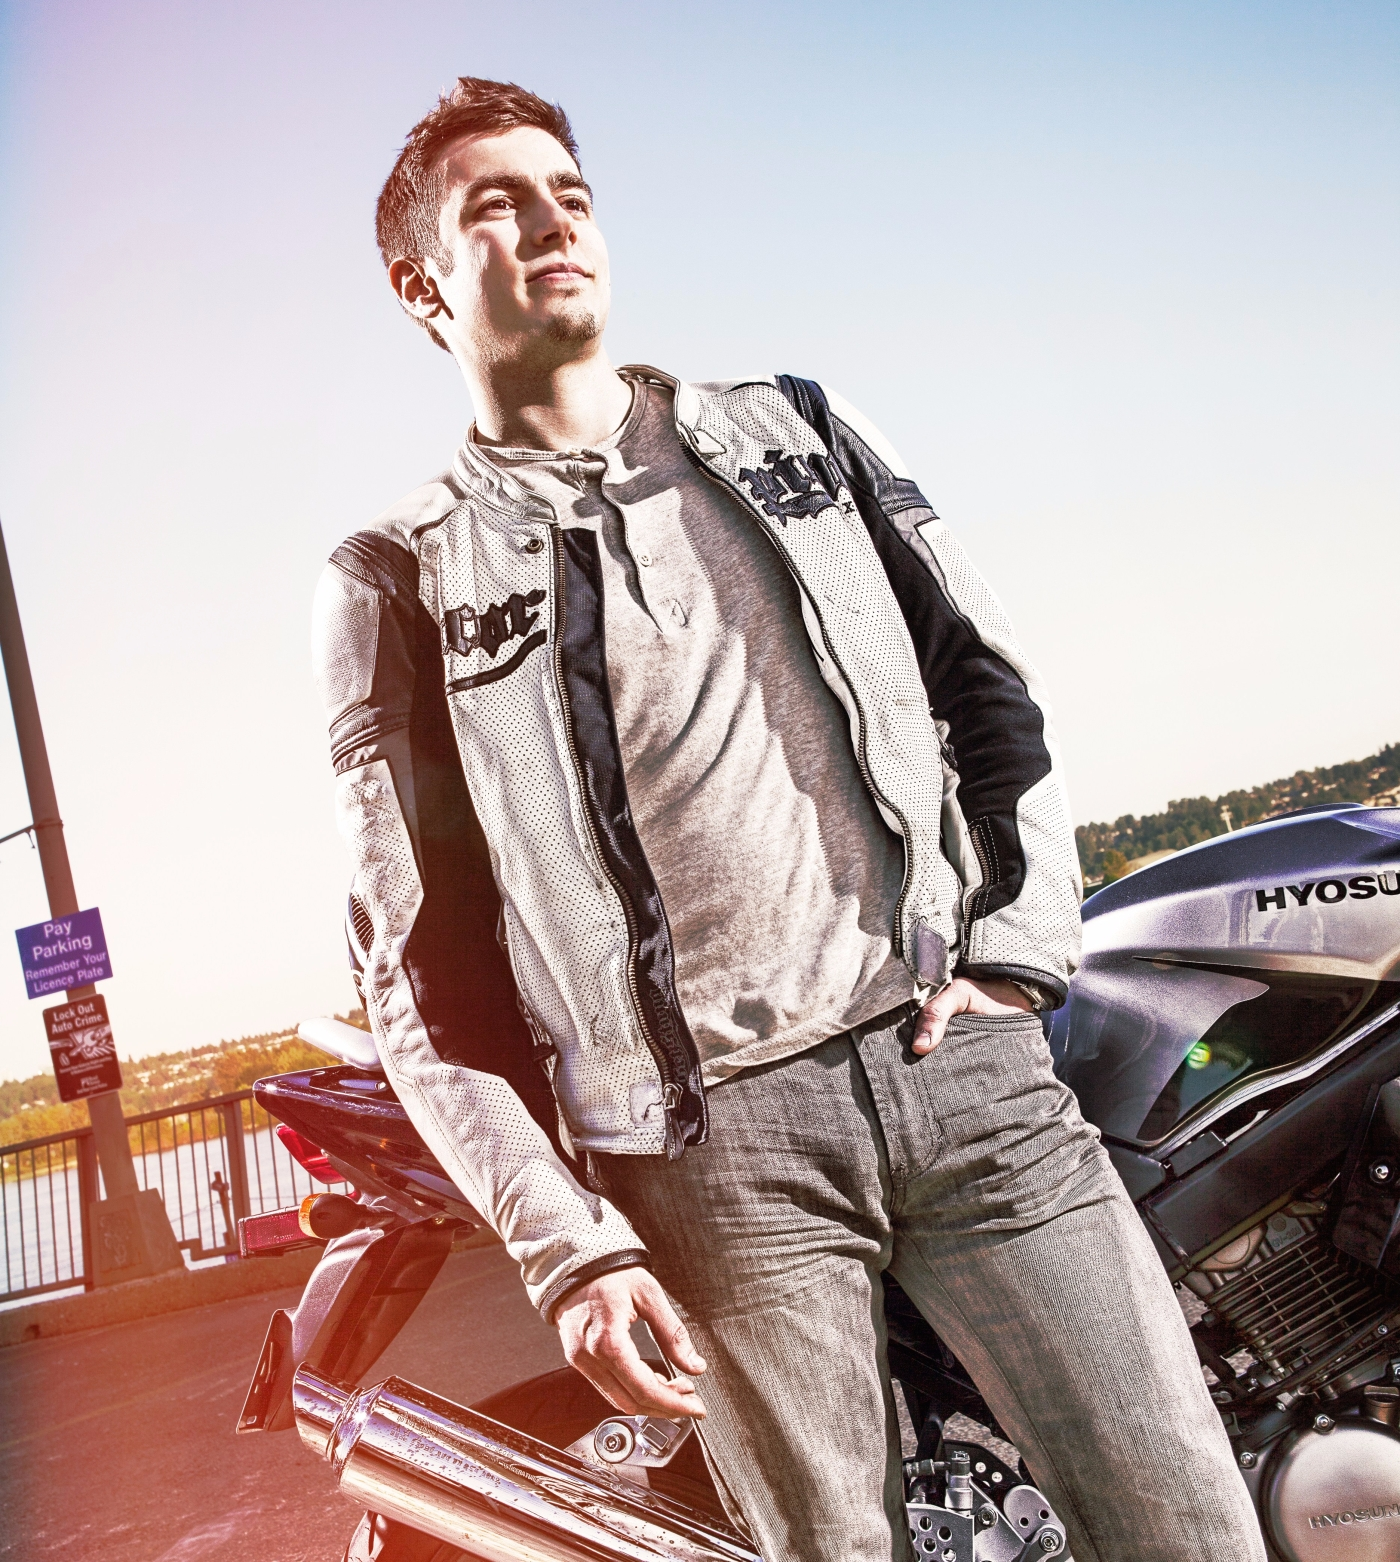 Sanjin stands in front of his motorcycle